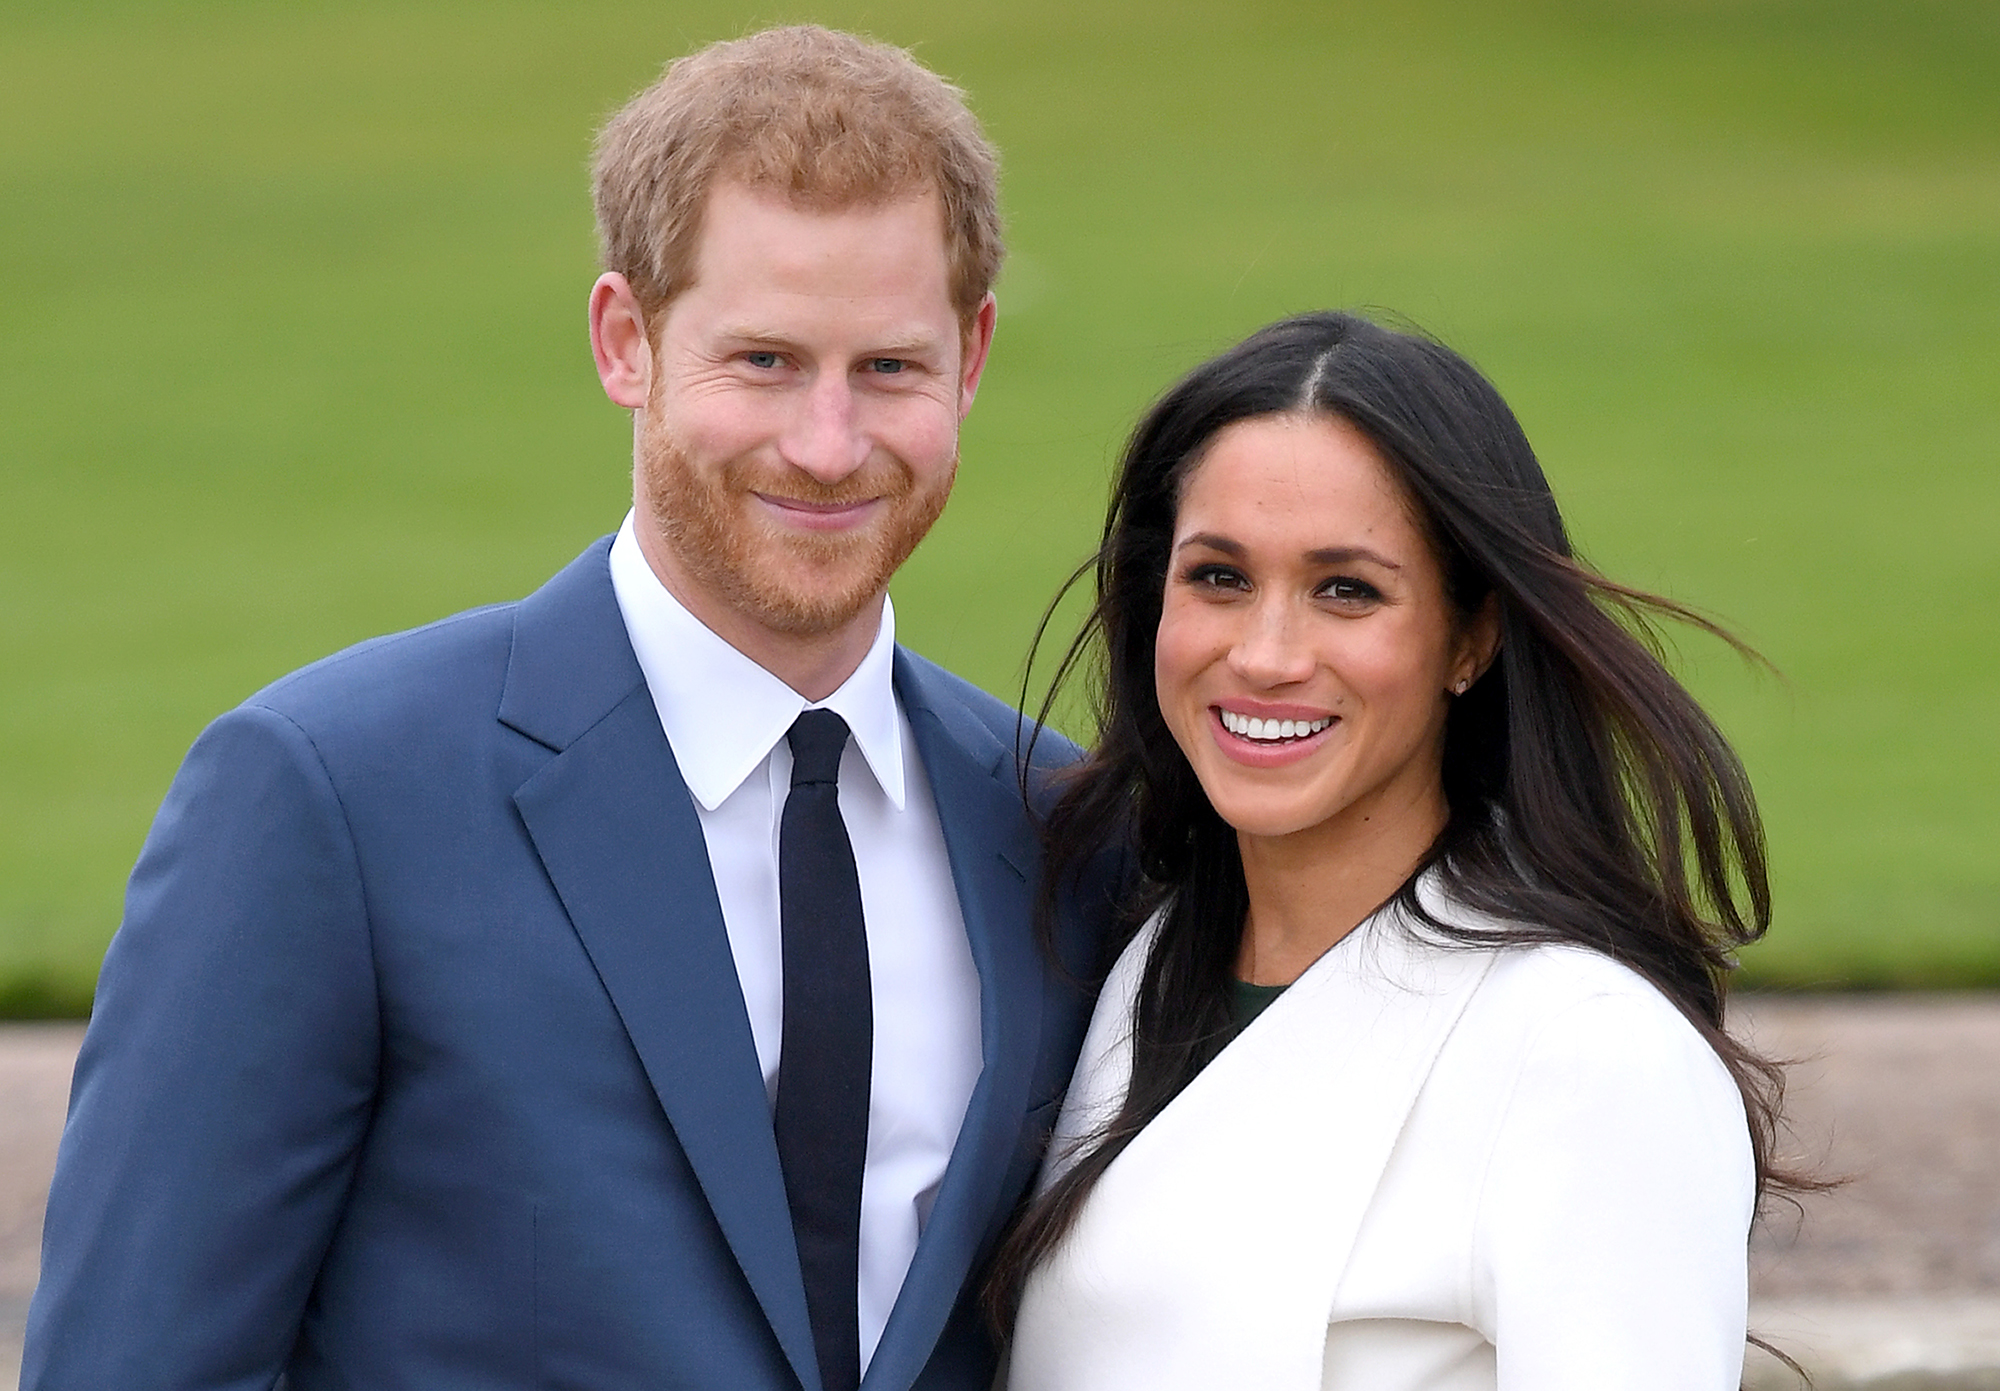 Prince Harry and Duchess Meghan's 1st Year of Marriage - Prince Harry and Meghan Markle.